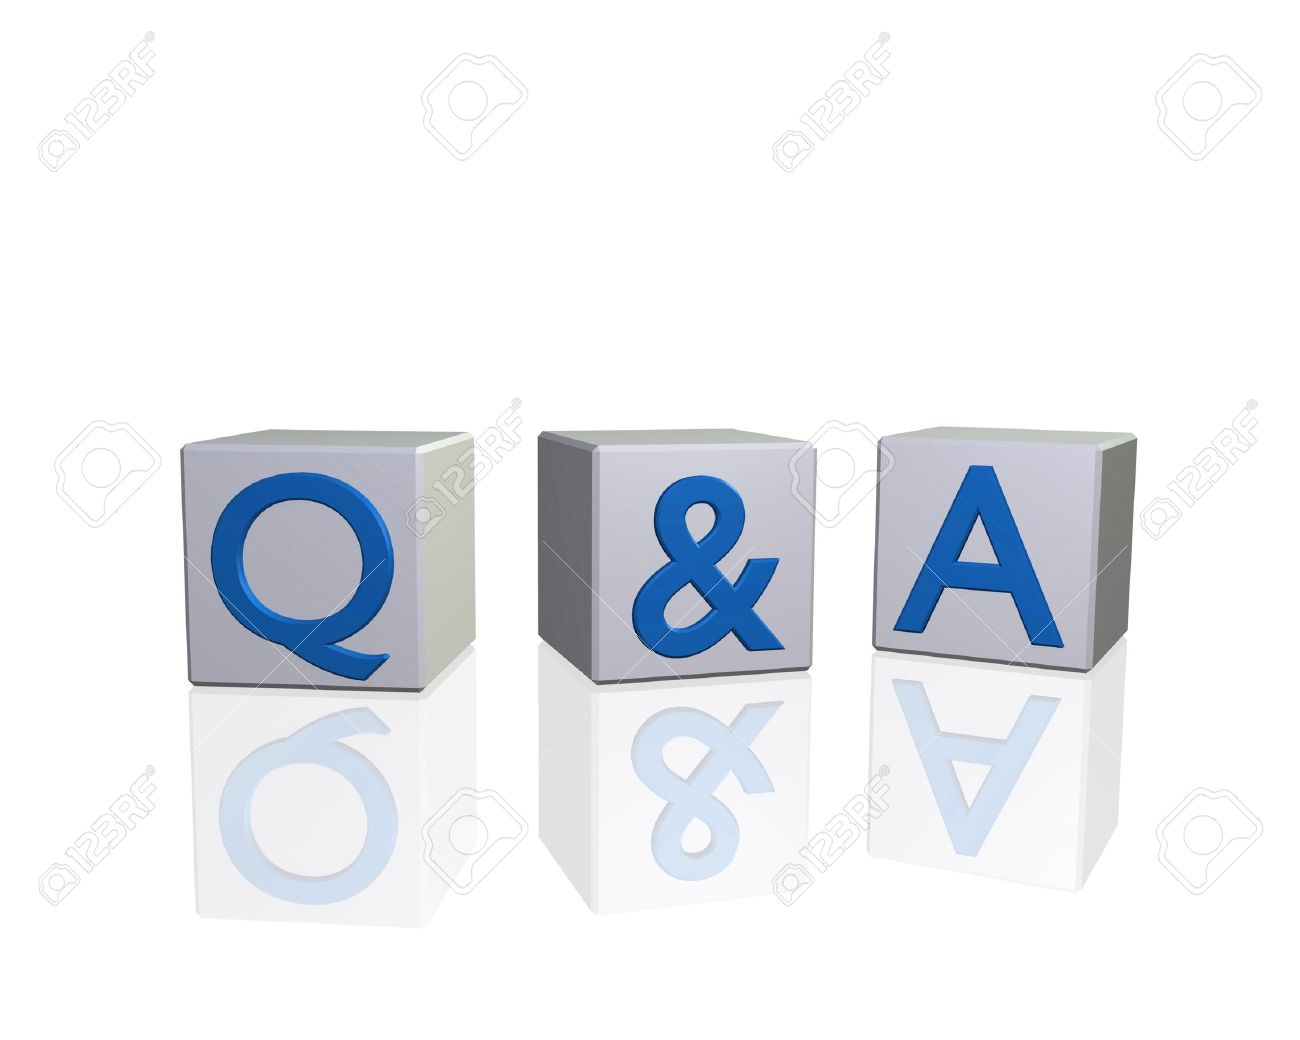 image of q a questions and answers on d blocks isolated on image of q a questions and answers on 3d blocks isolated on a white background